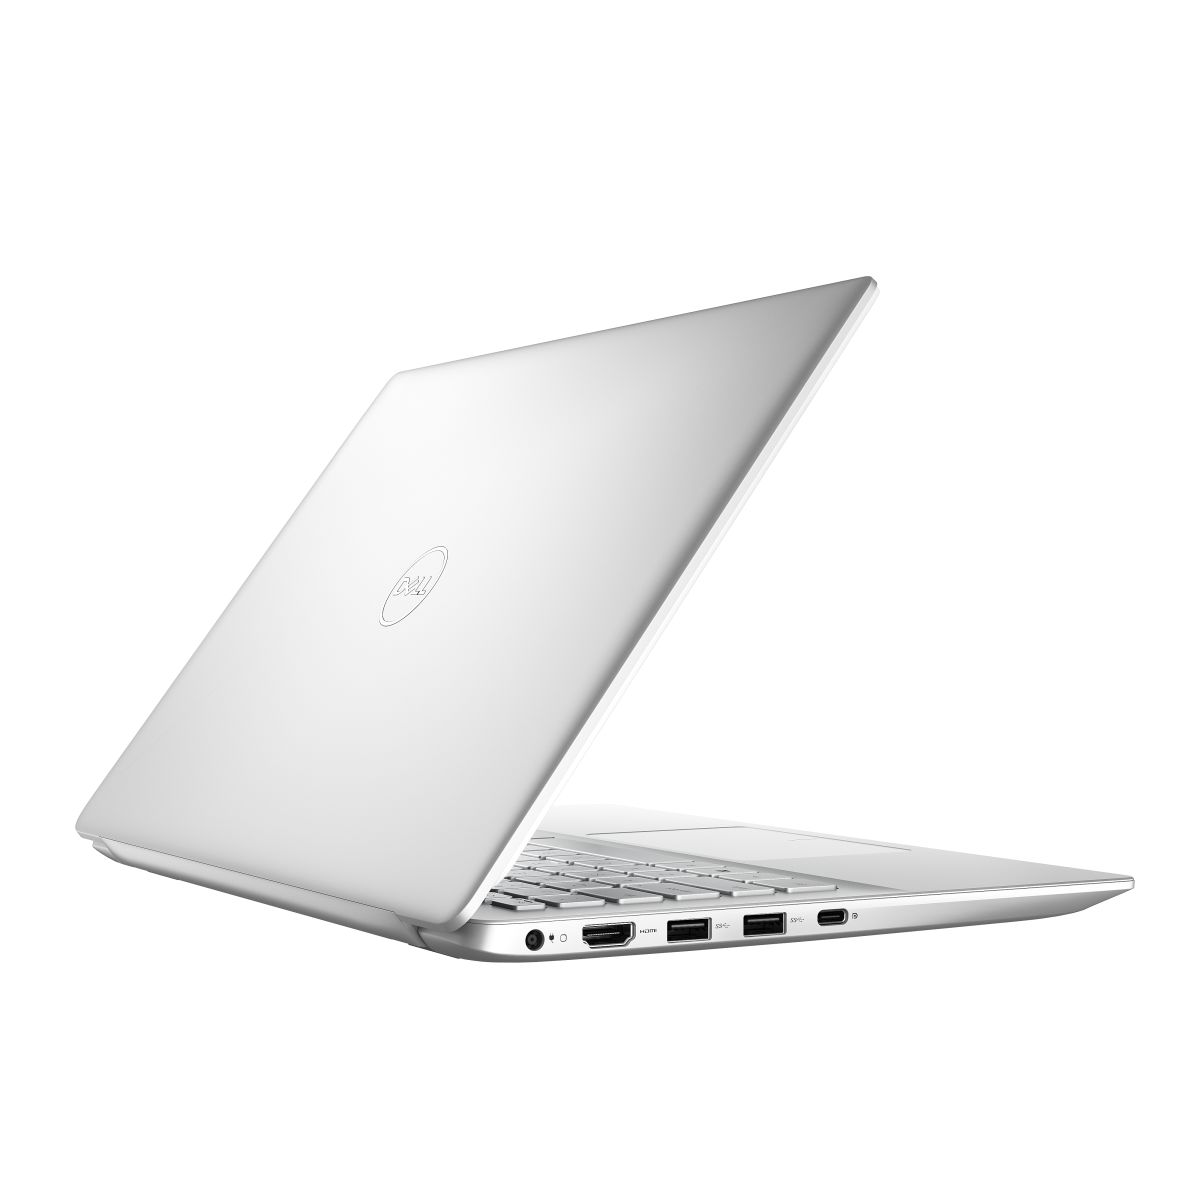 [New Arrival] Dell Inspiron 14 - 5490 Laptop Intel Core 10th Gen i7-10510U 8GB RAM 512GB M.2 SSDNVIDIA GeForce MX230 with 2GB GDDR5Windows 10 Home 14.0inch FullHD Platinum Silver,Dell Backpack ,Wireless mouse dell 1 year onsite warranty